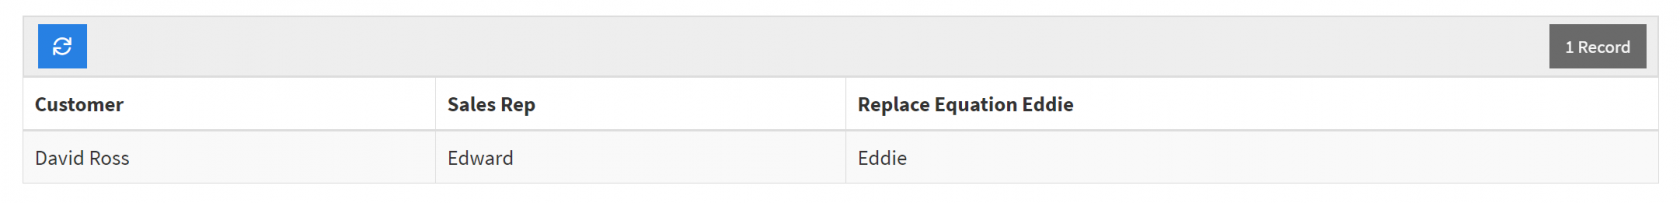 equations-replace-eddie-result.png